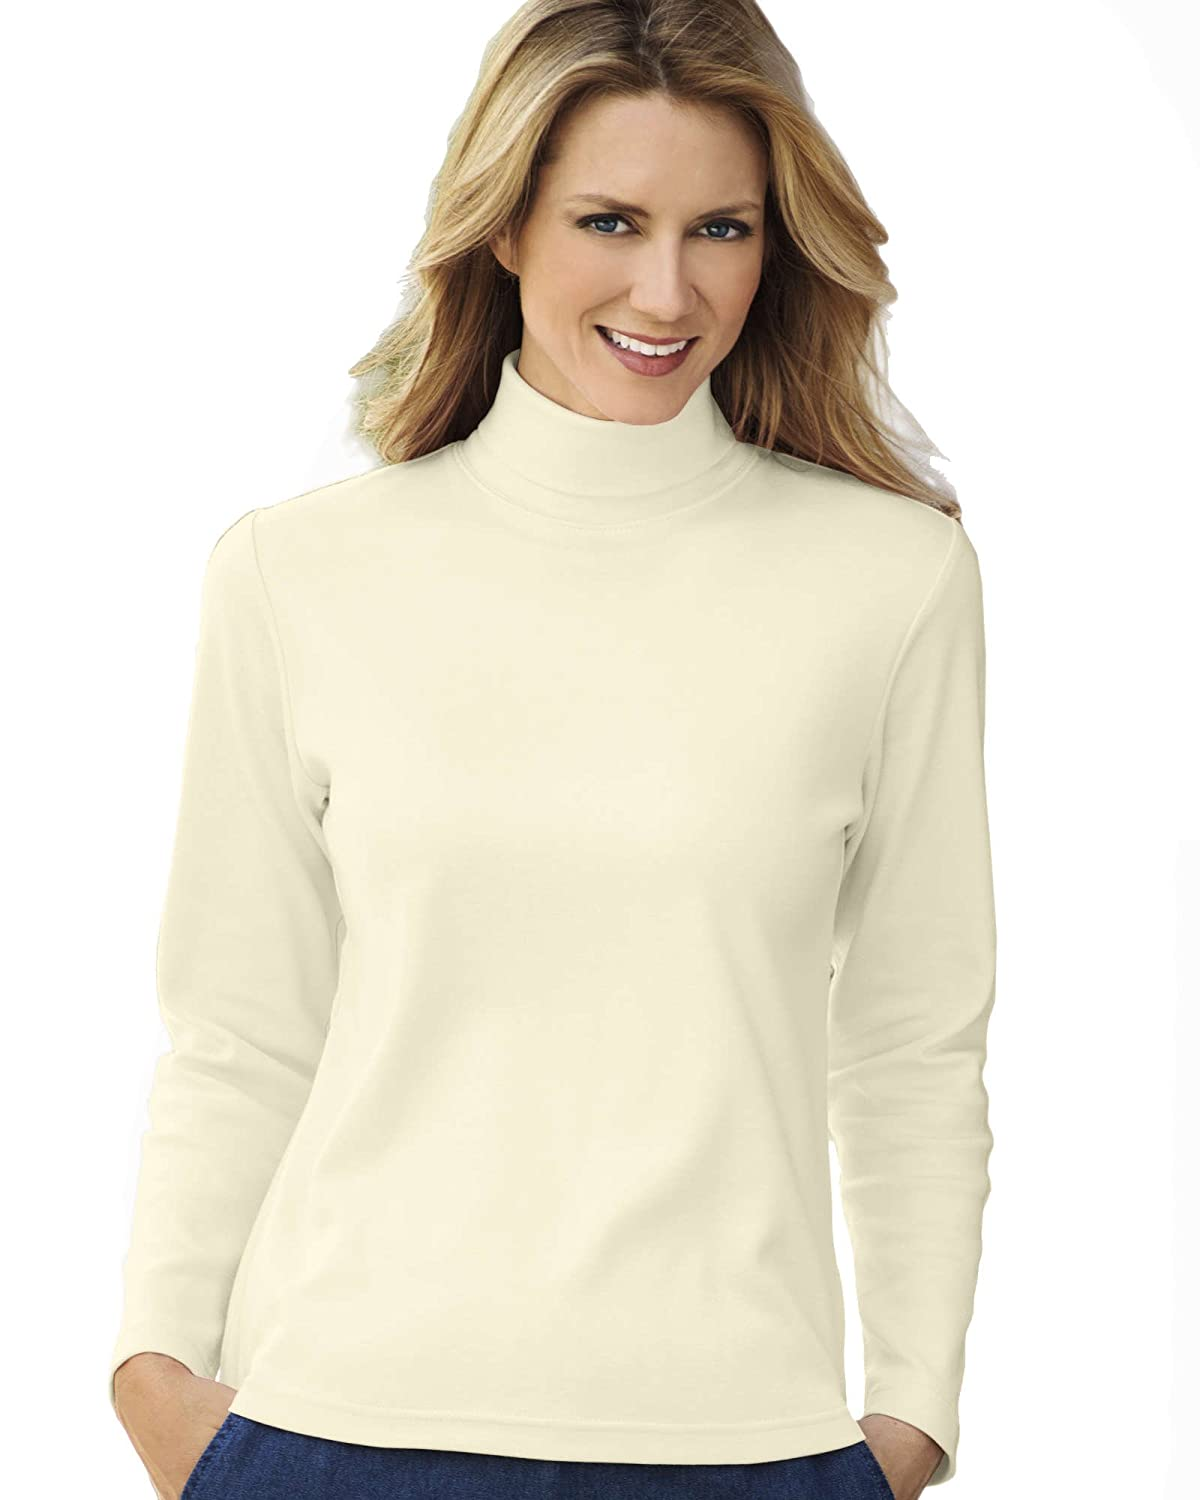 UltraSofts Turtleneck at Amazon Women's Clothing store: Blouses